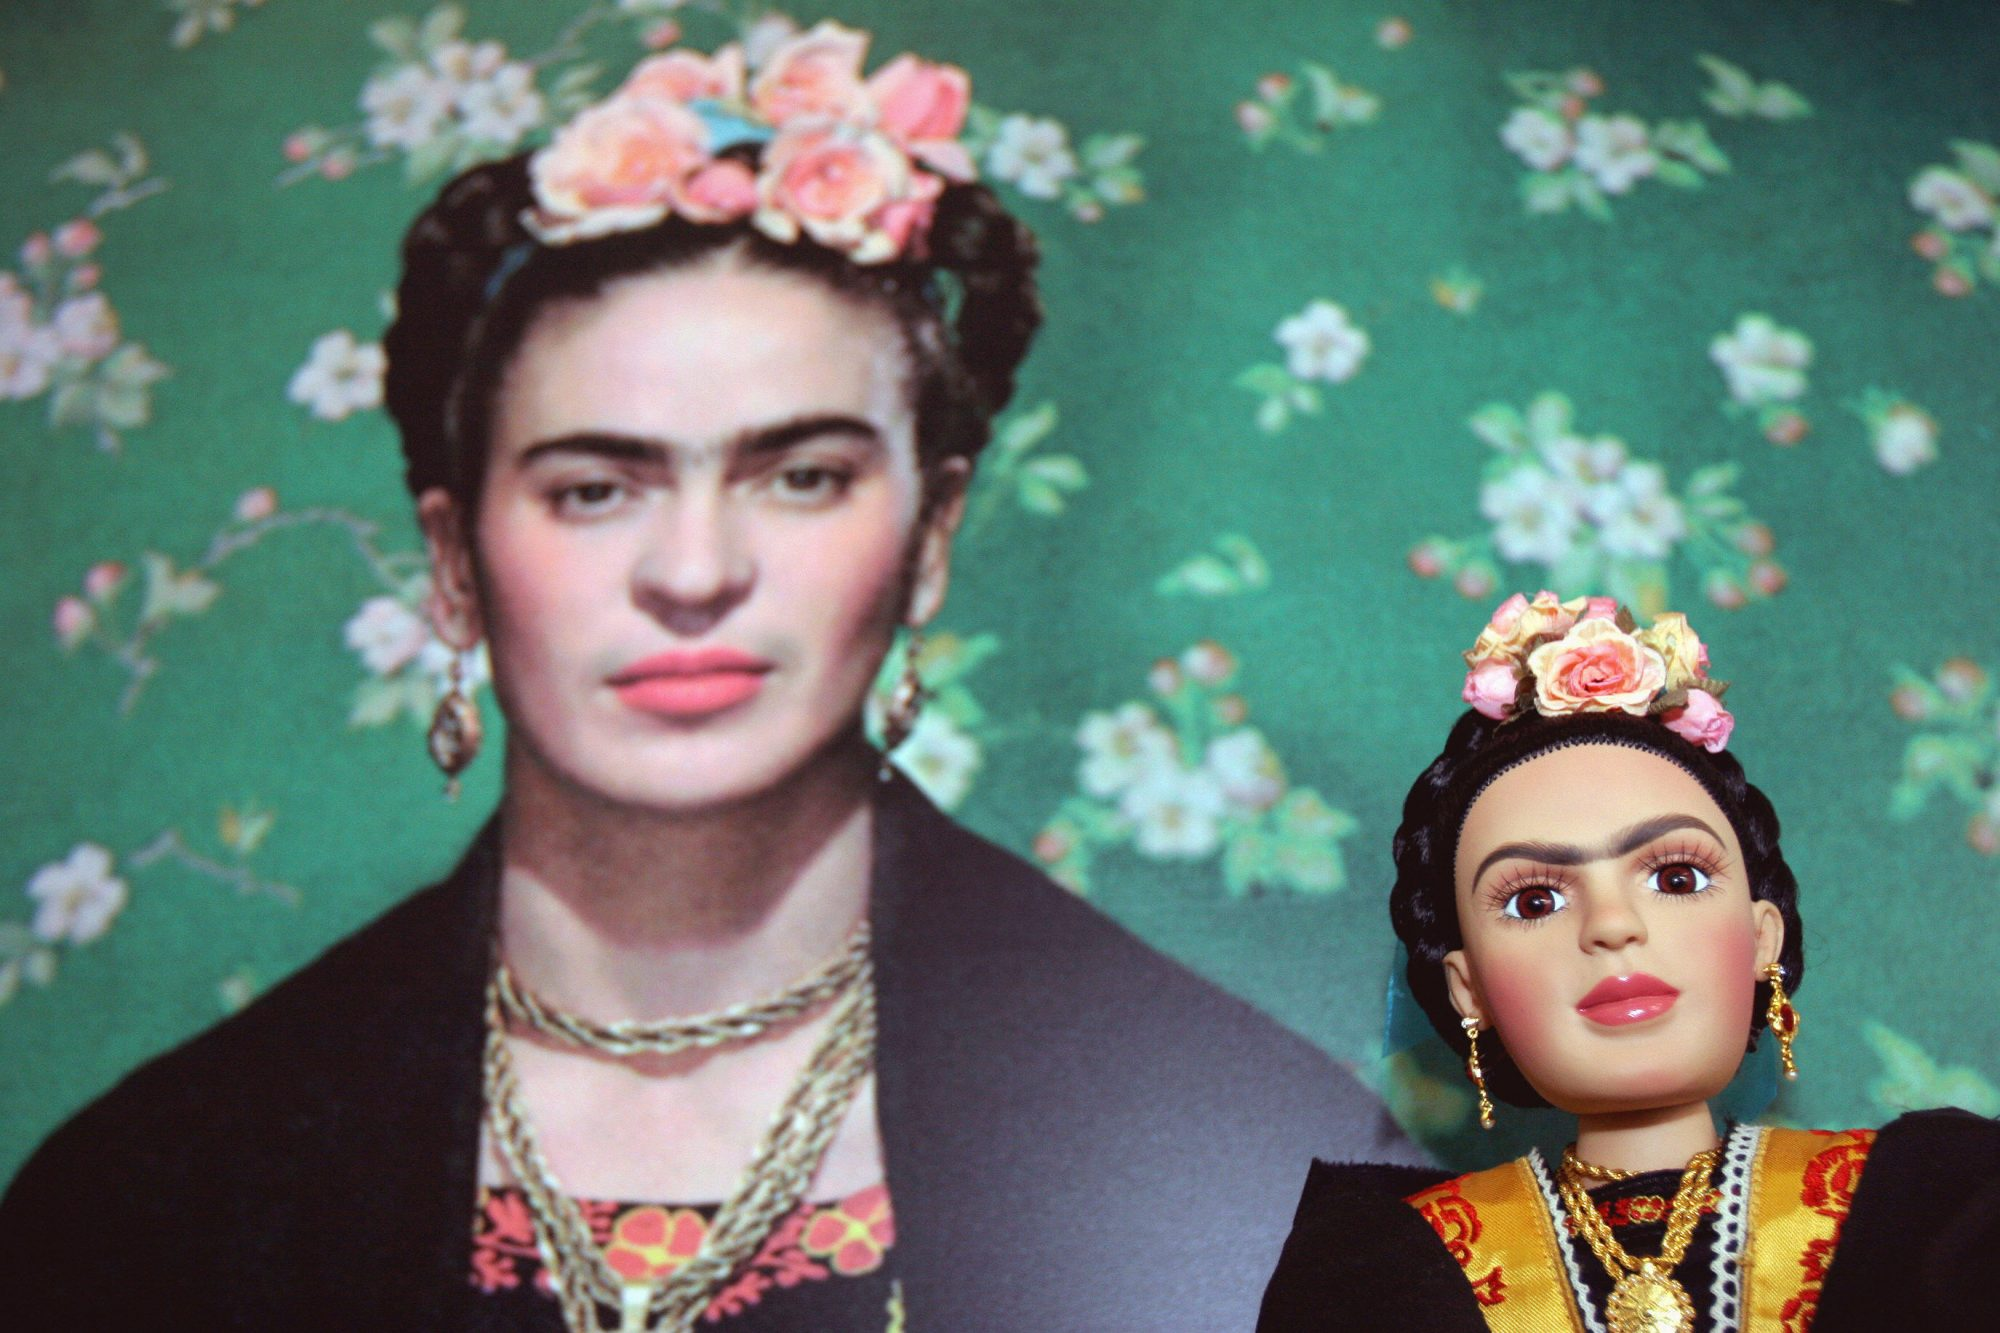 A Frida Kahlo doll is seen next to a pic